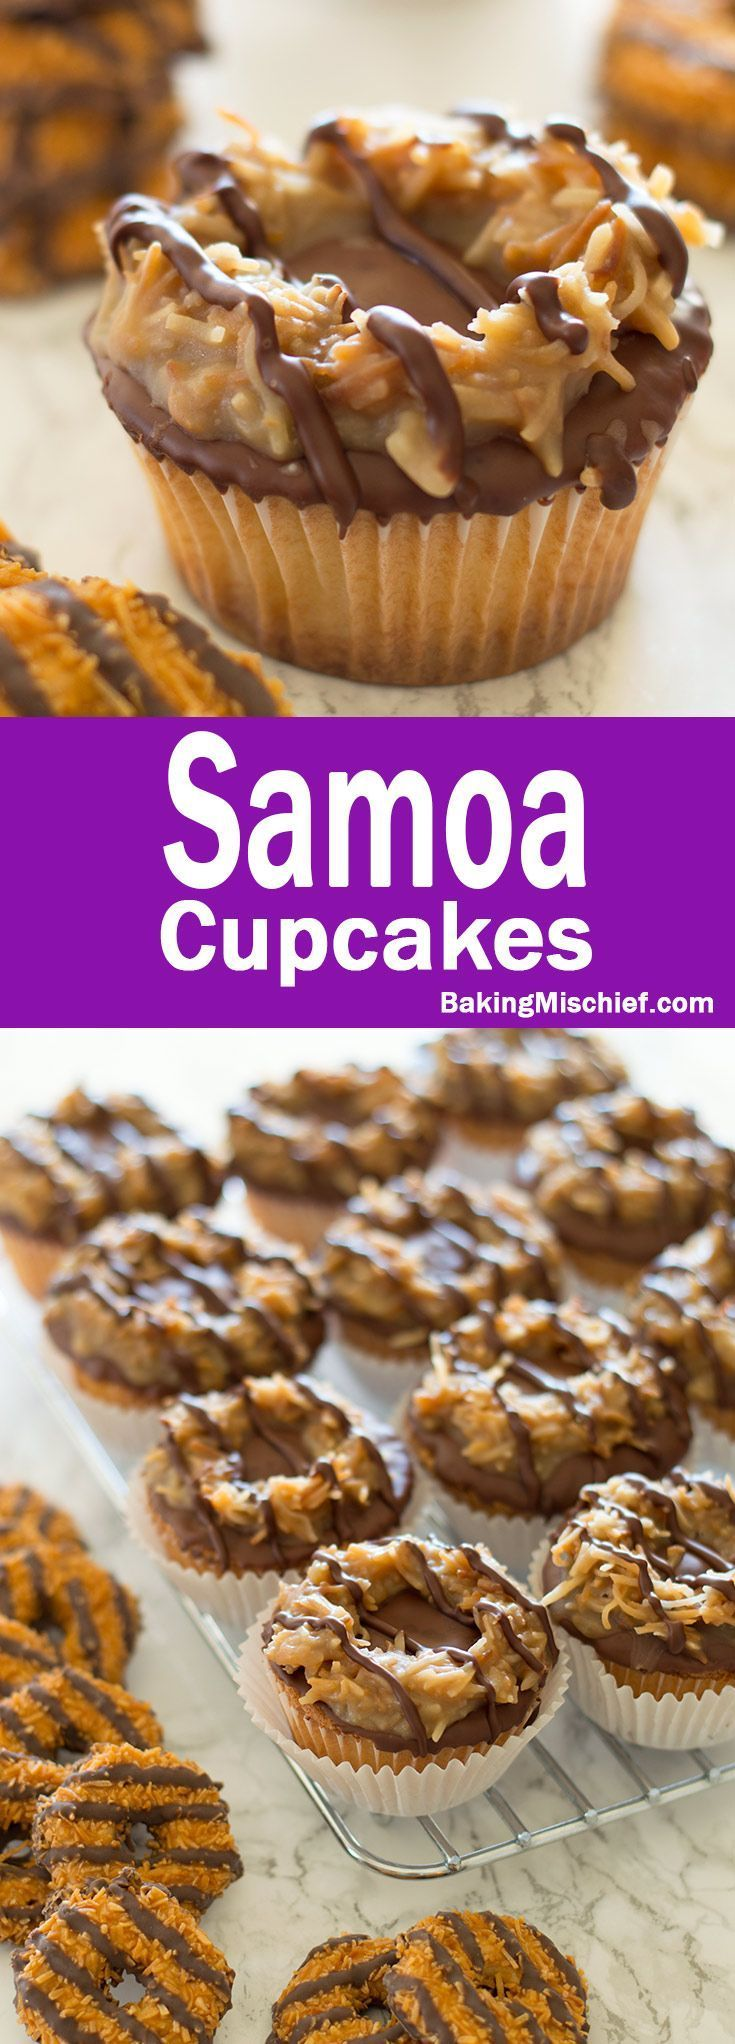 Samoa Cupcakes - Toasted coconut, quick homemade caramel, and chocolate coating over a pound cake cupcake is sure to please lovers of the Girl Scout's most divisive cookie. Recipe includes nutritional information and small-batch instructions. From http://